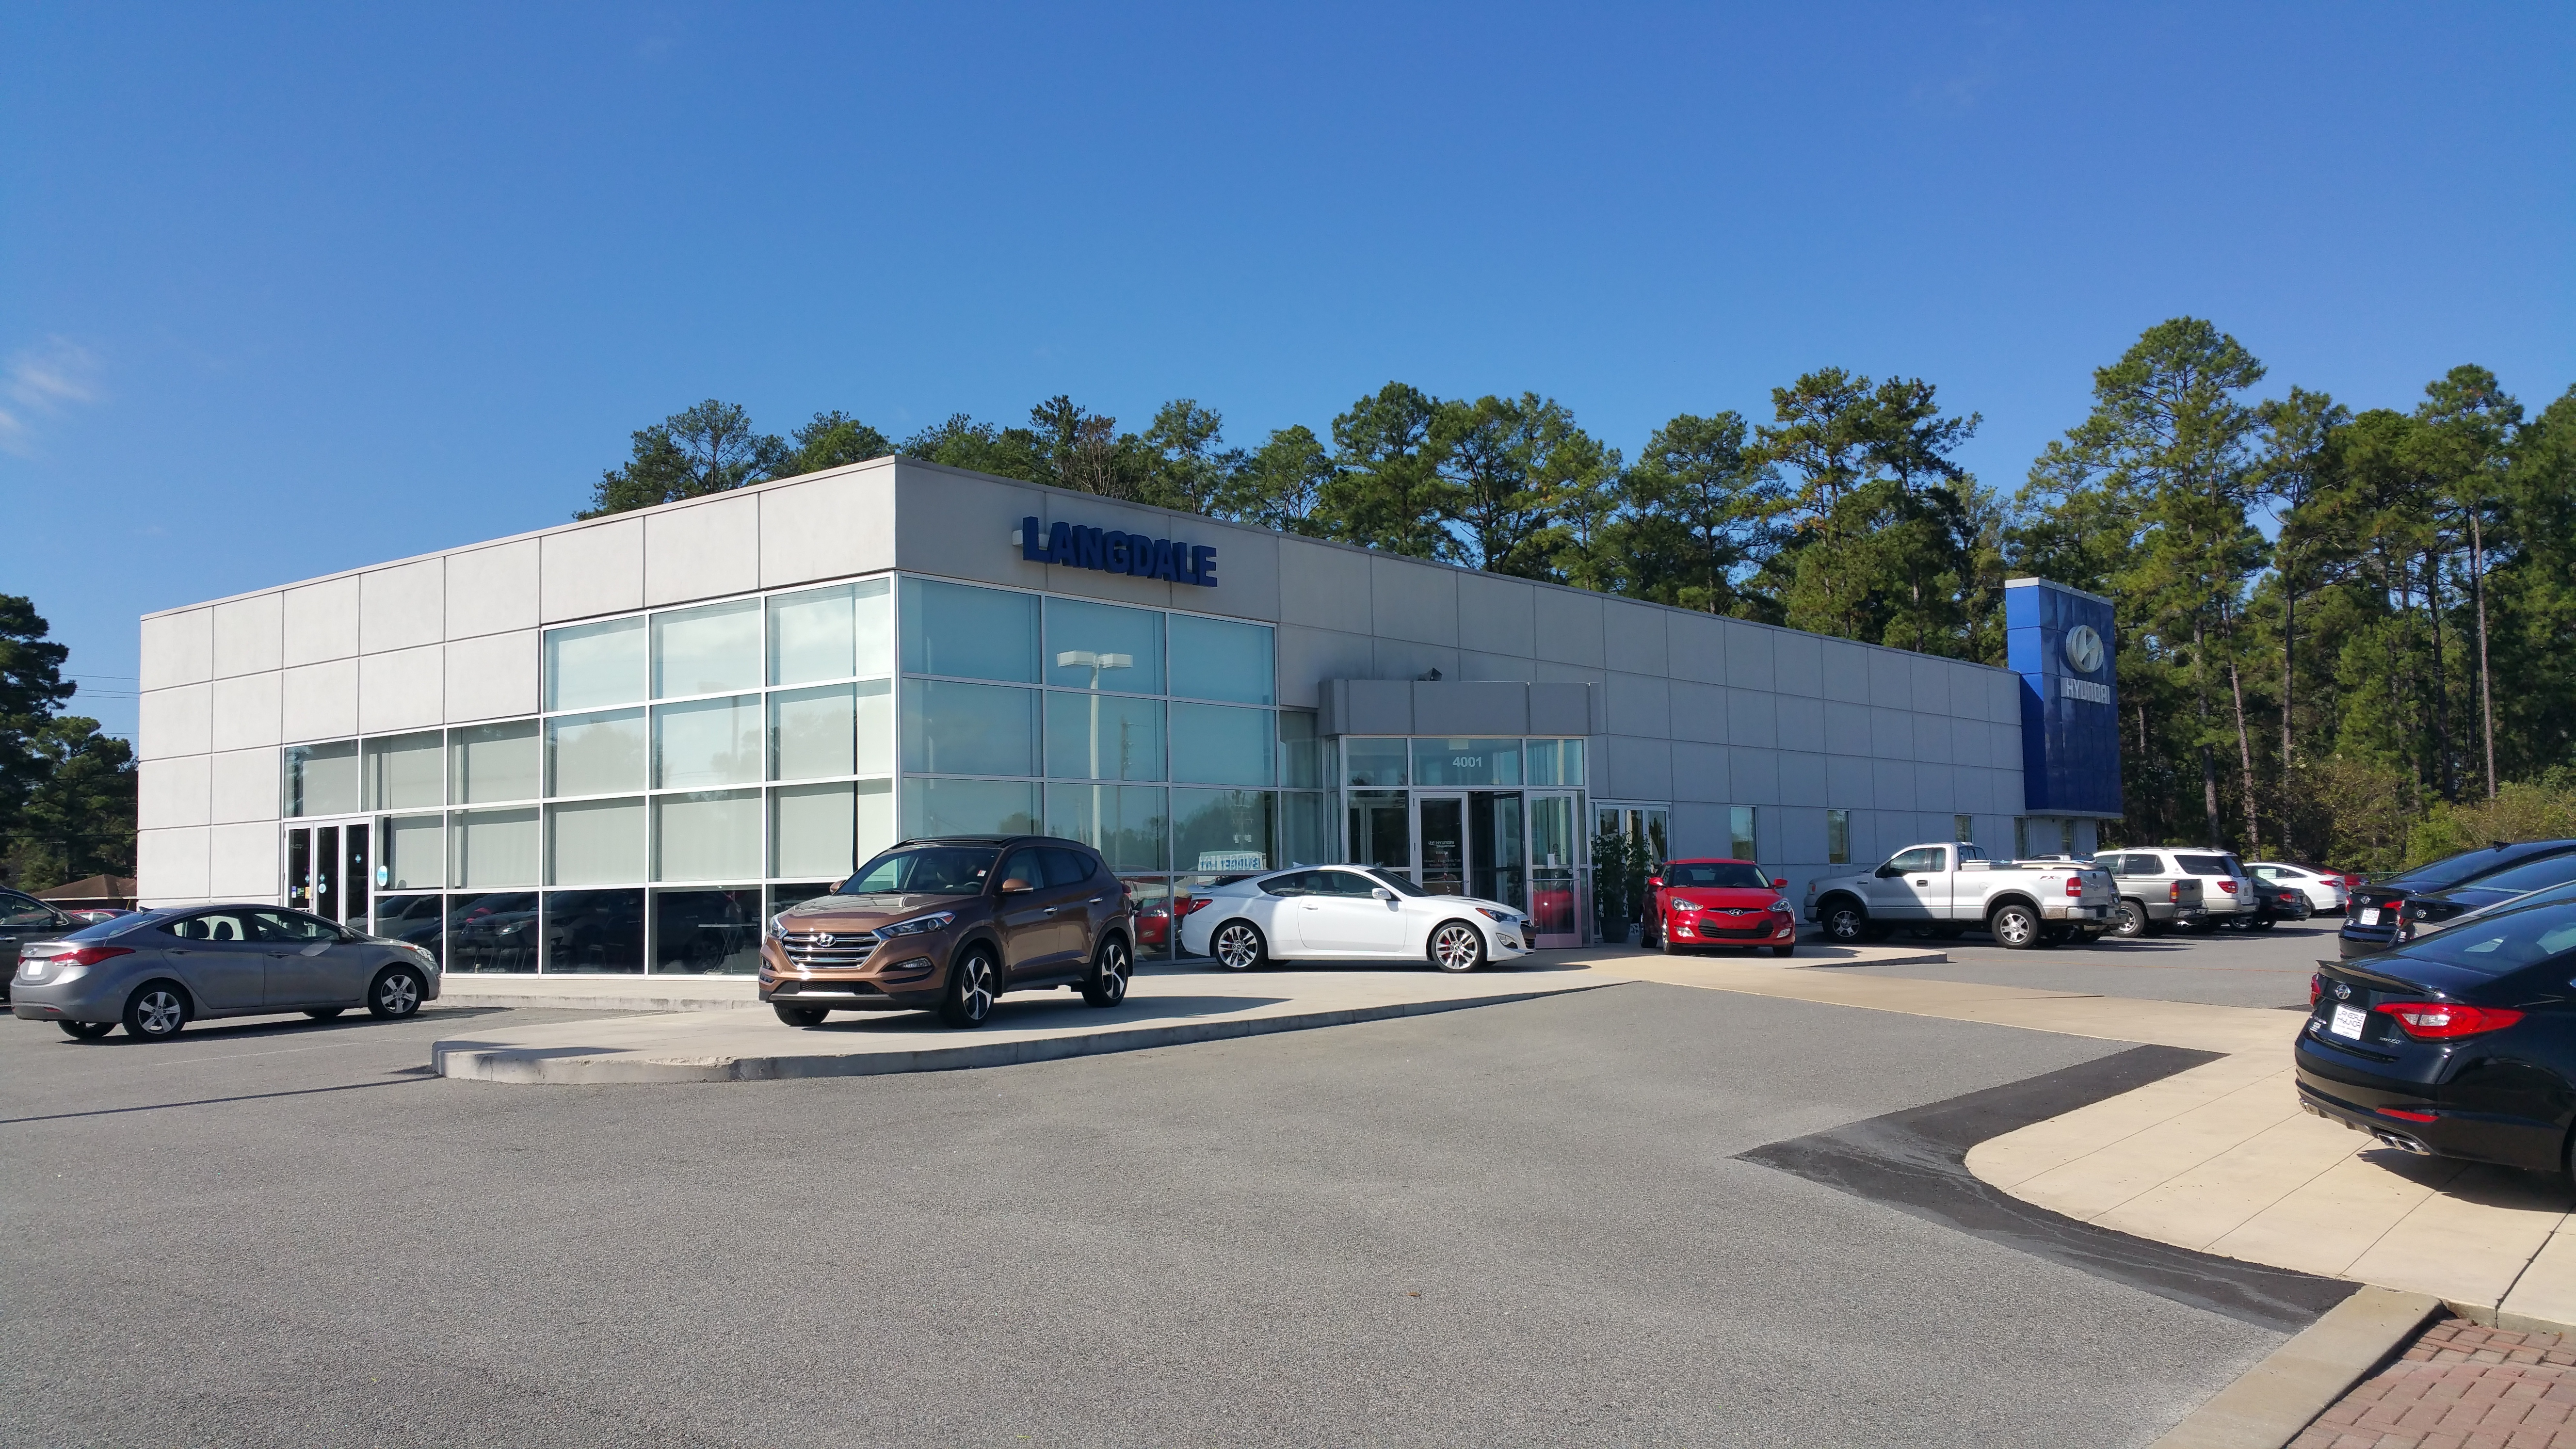 pay savannah buy banner hyundai here used byrider d cars j